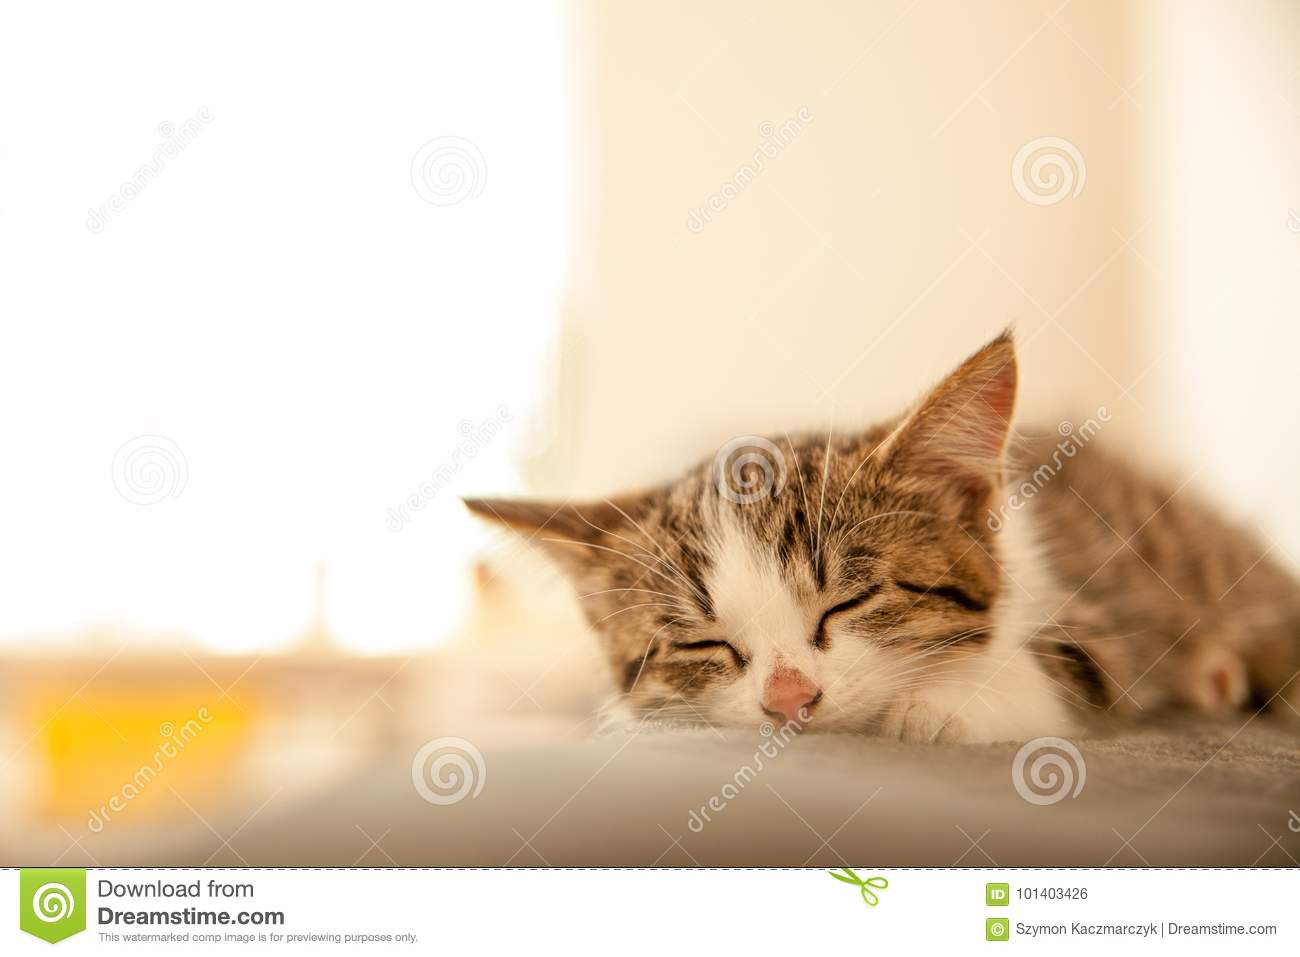 Little kitten sleeps on a coverlet. Small cat sleeps sweetly as a small bed. Sleeping cat in home on a blur light background.